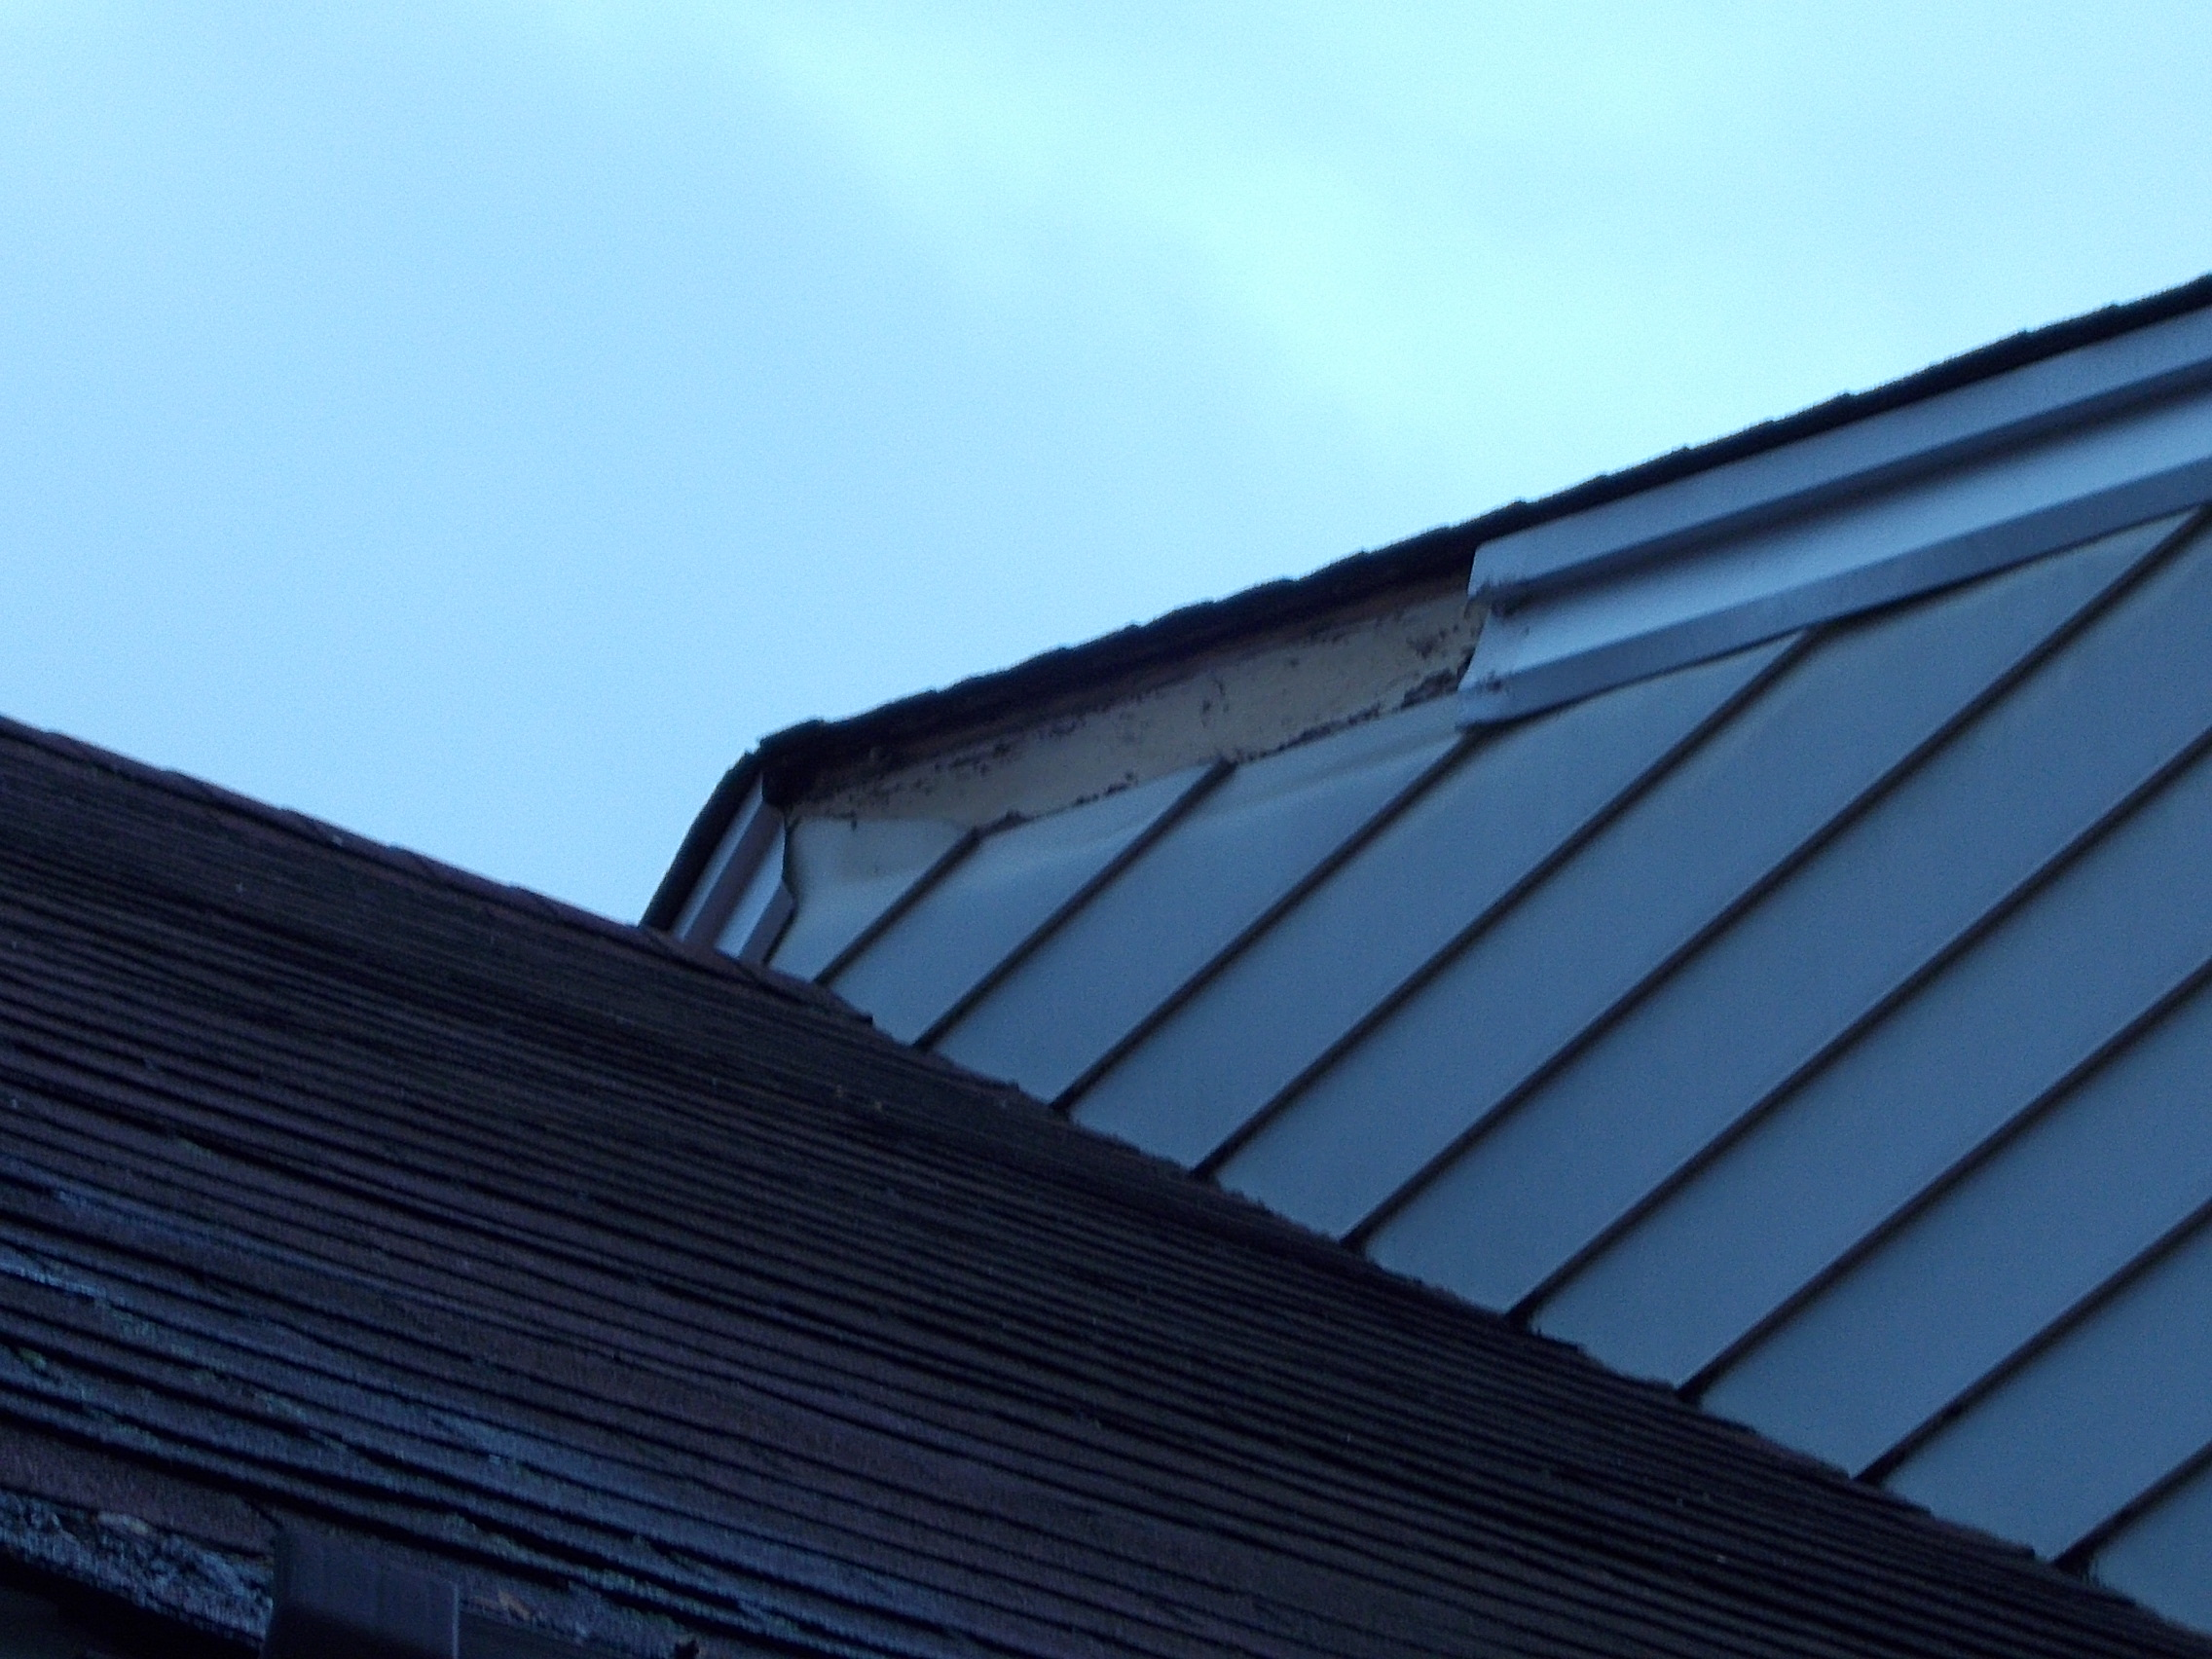 Roof Leak Repair Service How To Fix A Leak Sydney Wide